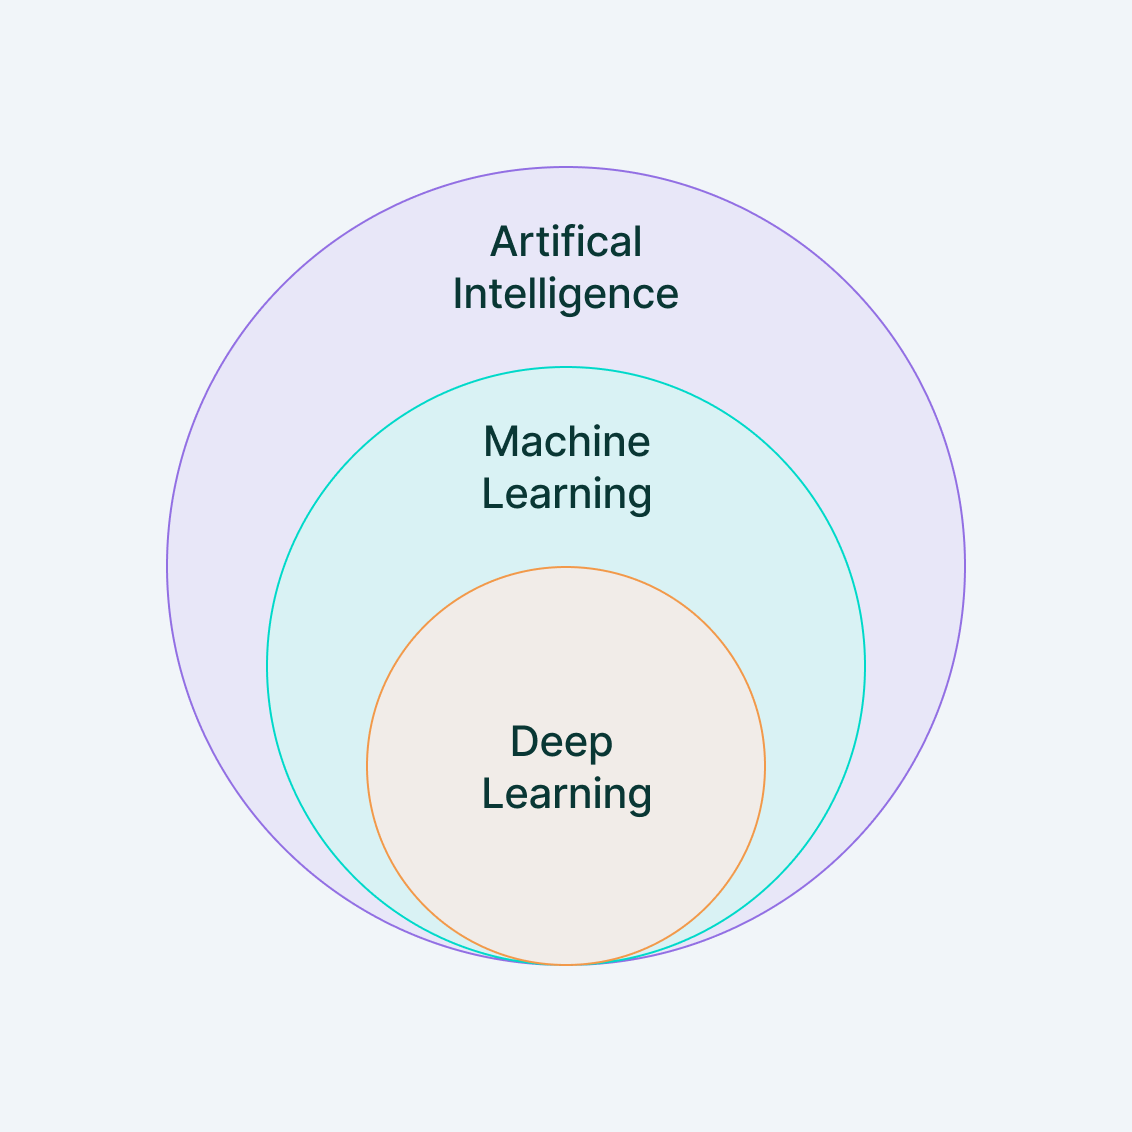 Machine learning vs Deep Learning vs Artificial Intelligence